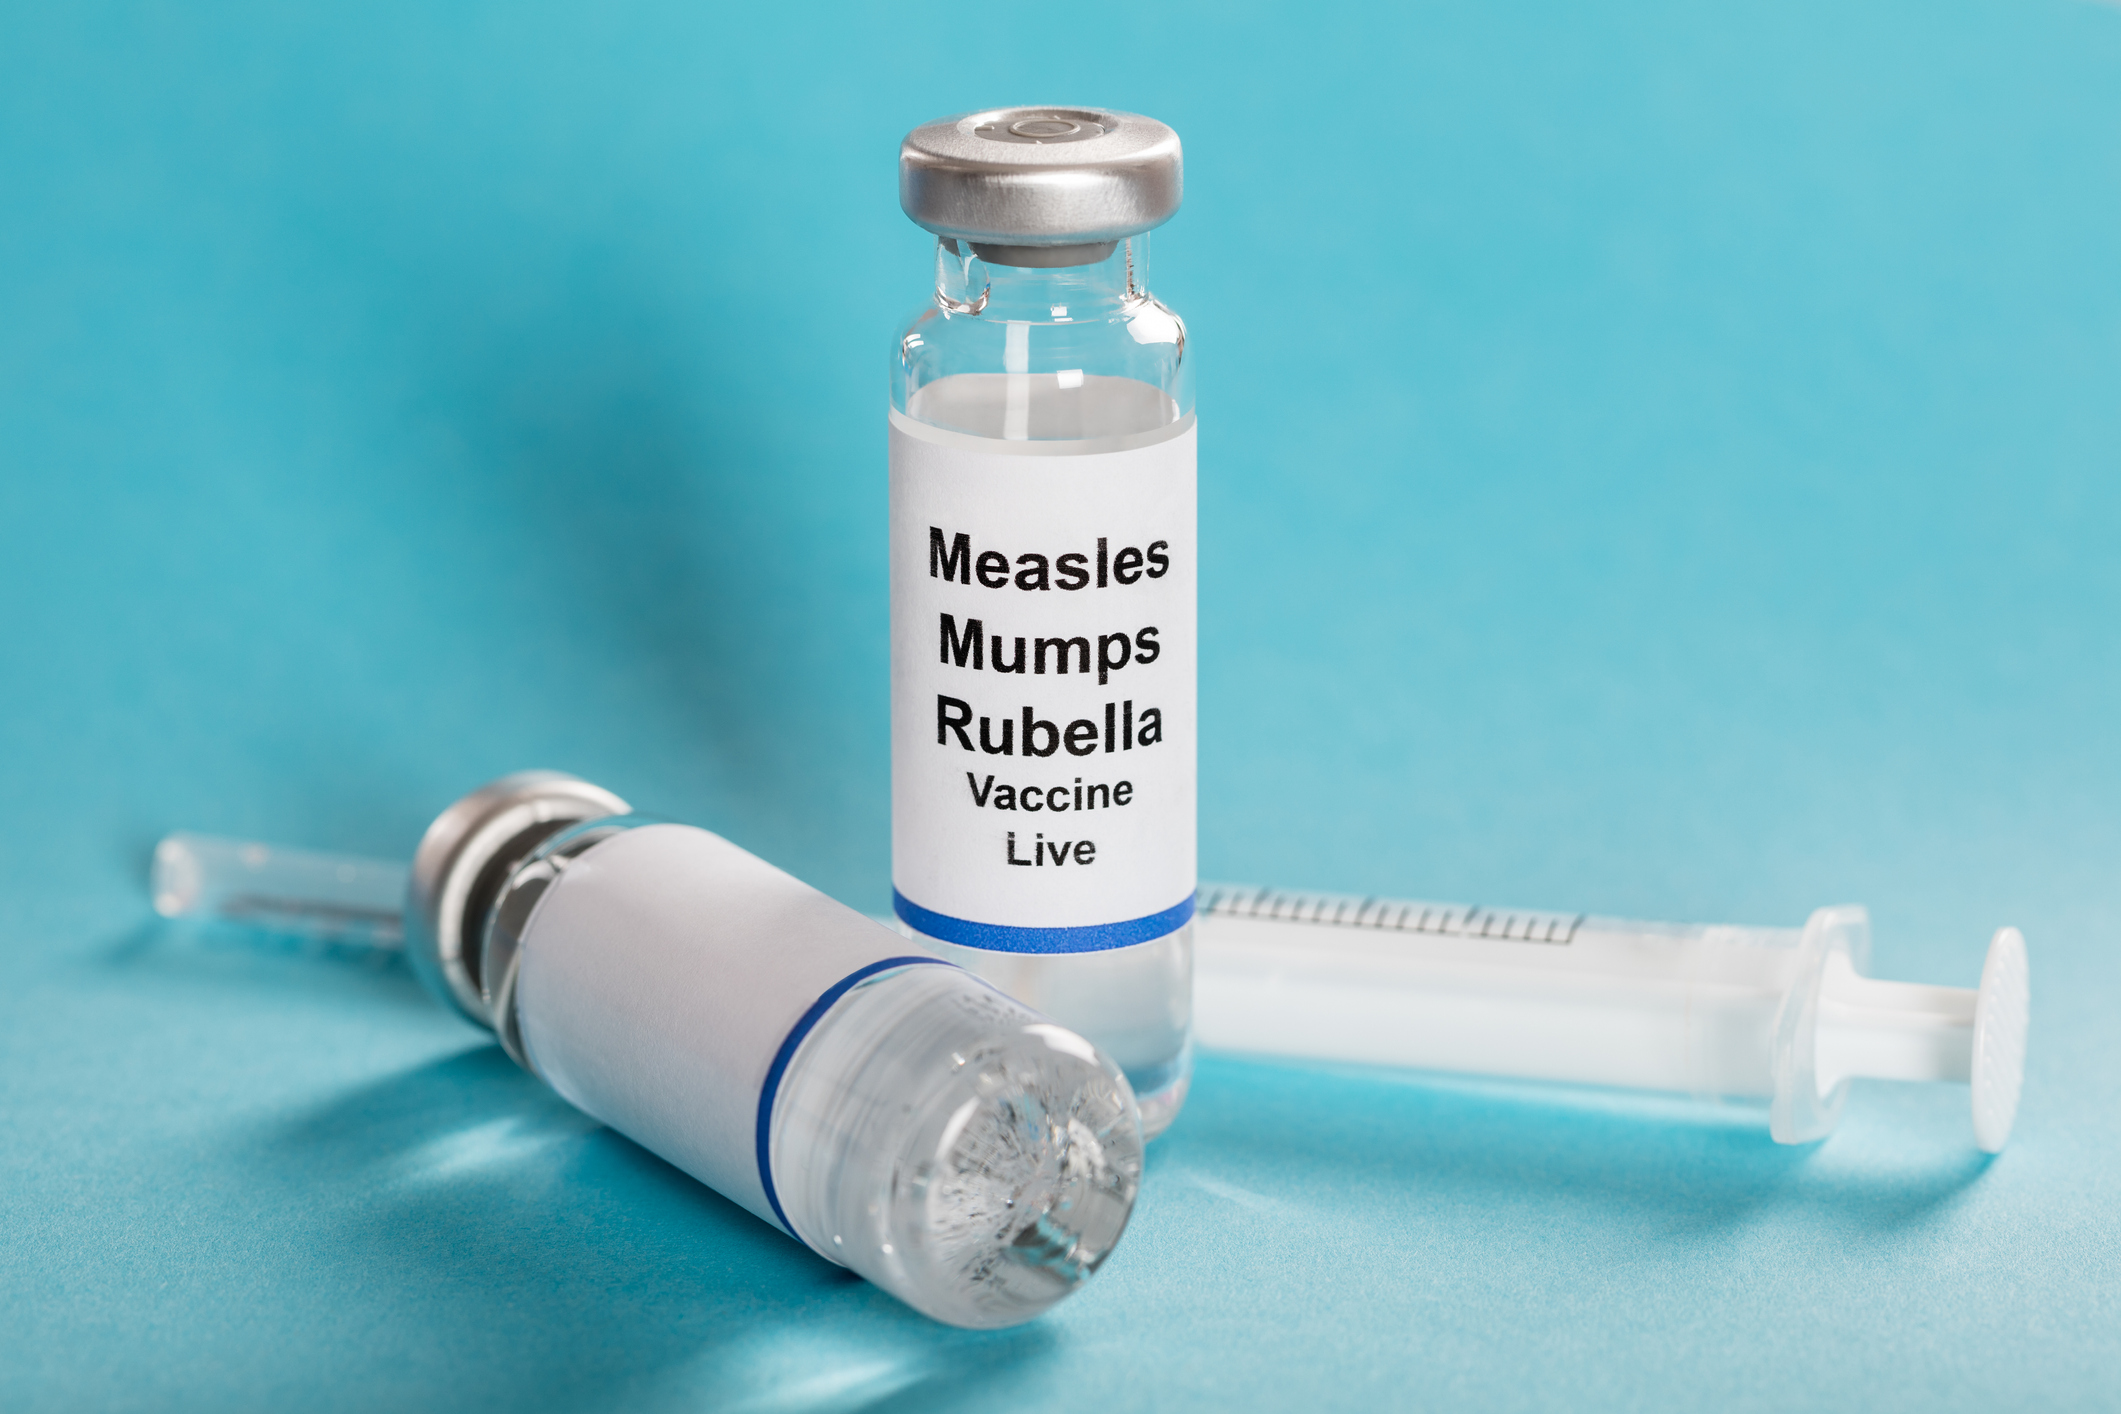 Measles extend over 100 more people in US, all set to reach the record number